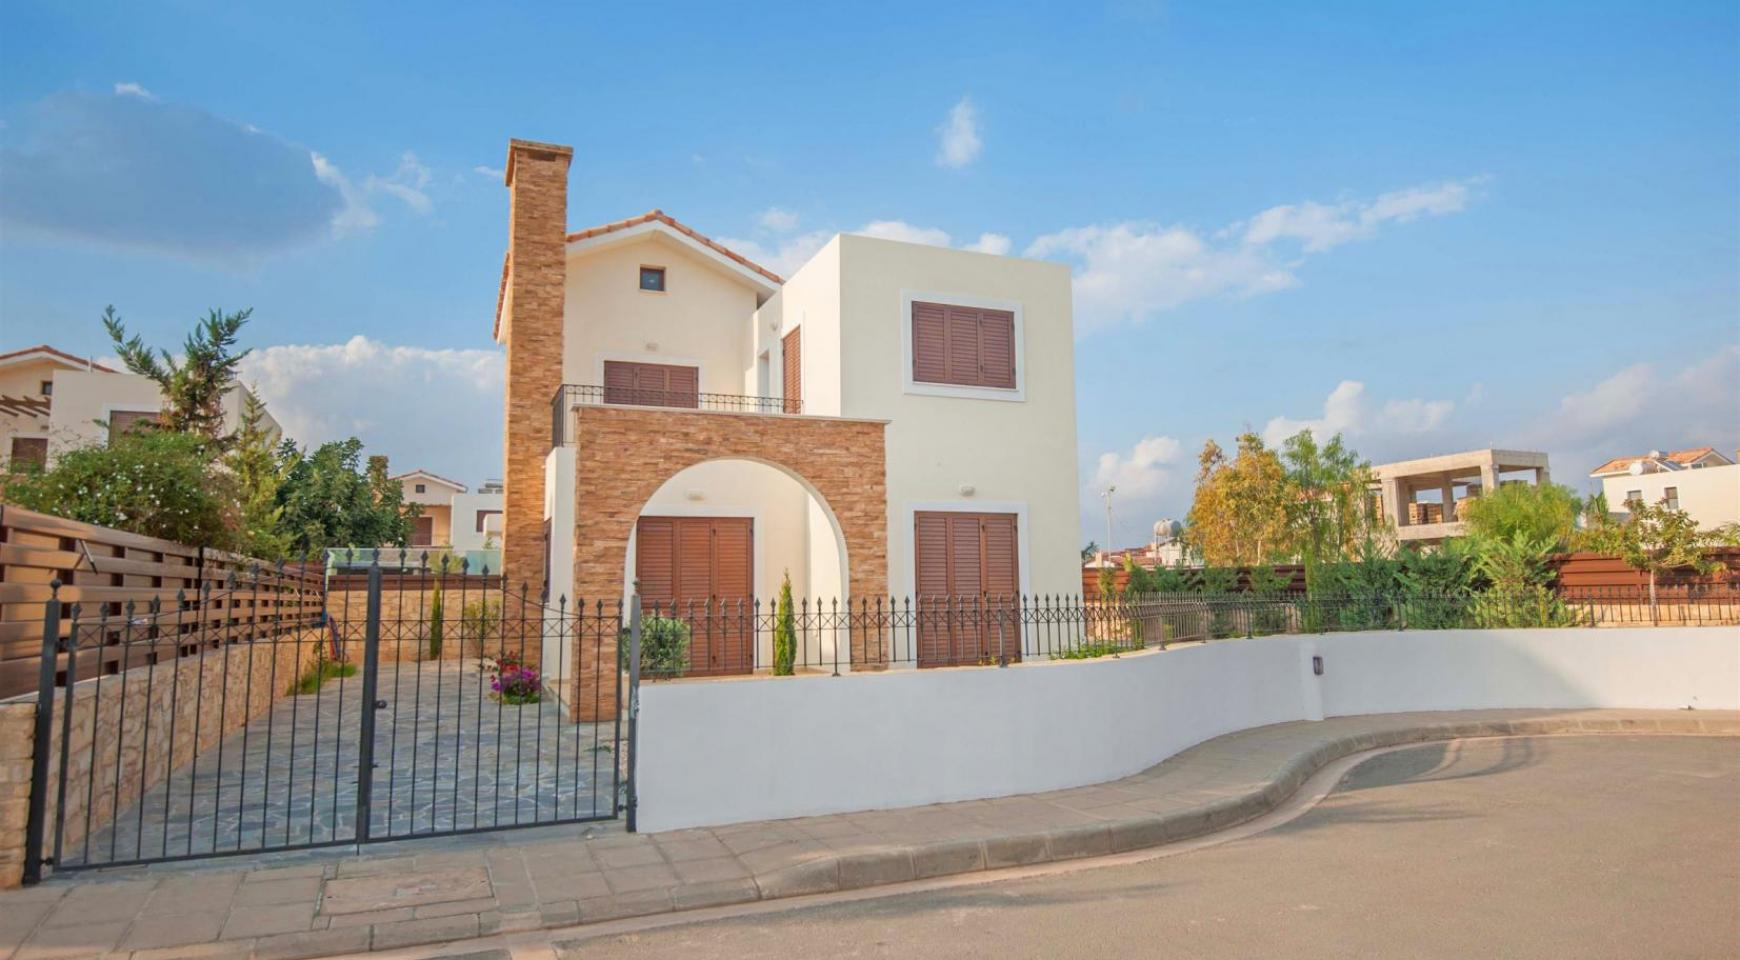 Detached 3 Bedroom Villa on the Seafront of Ayia Thekla - 1